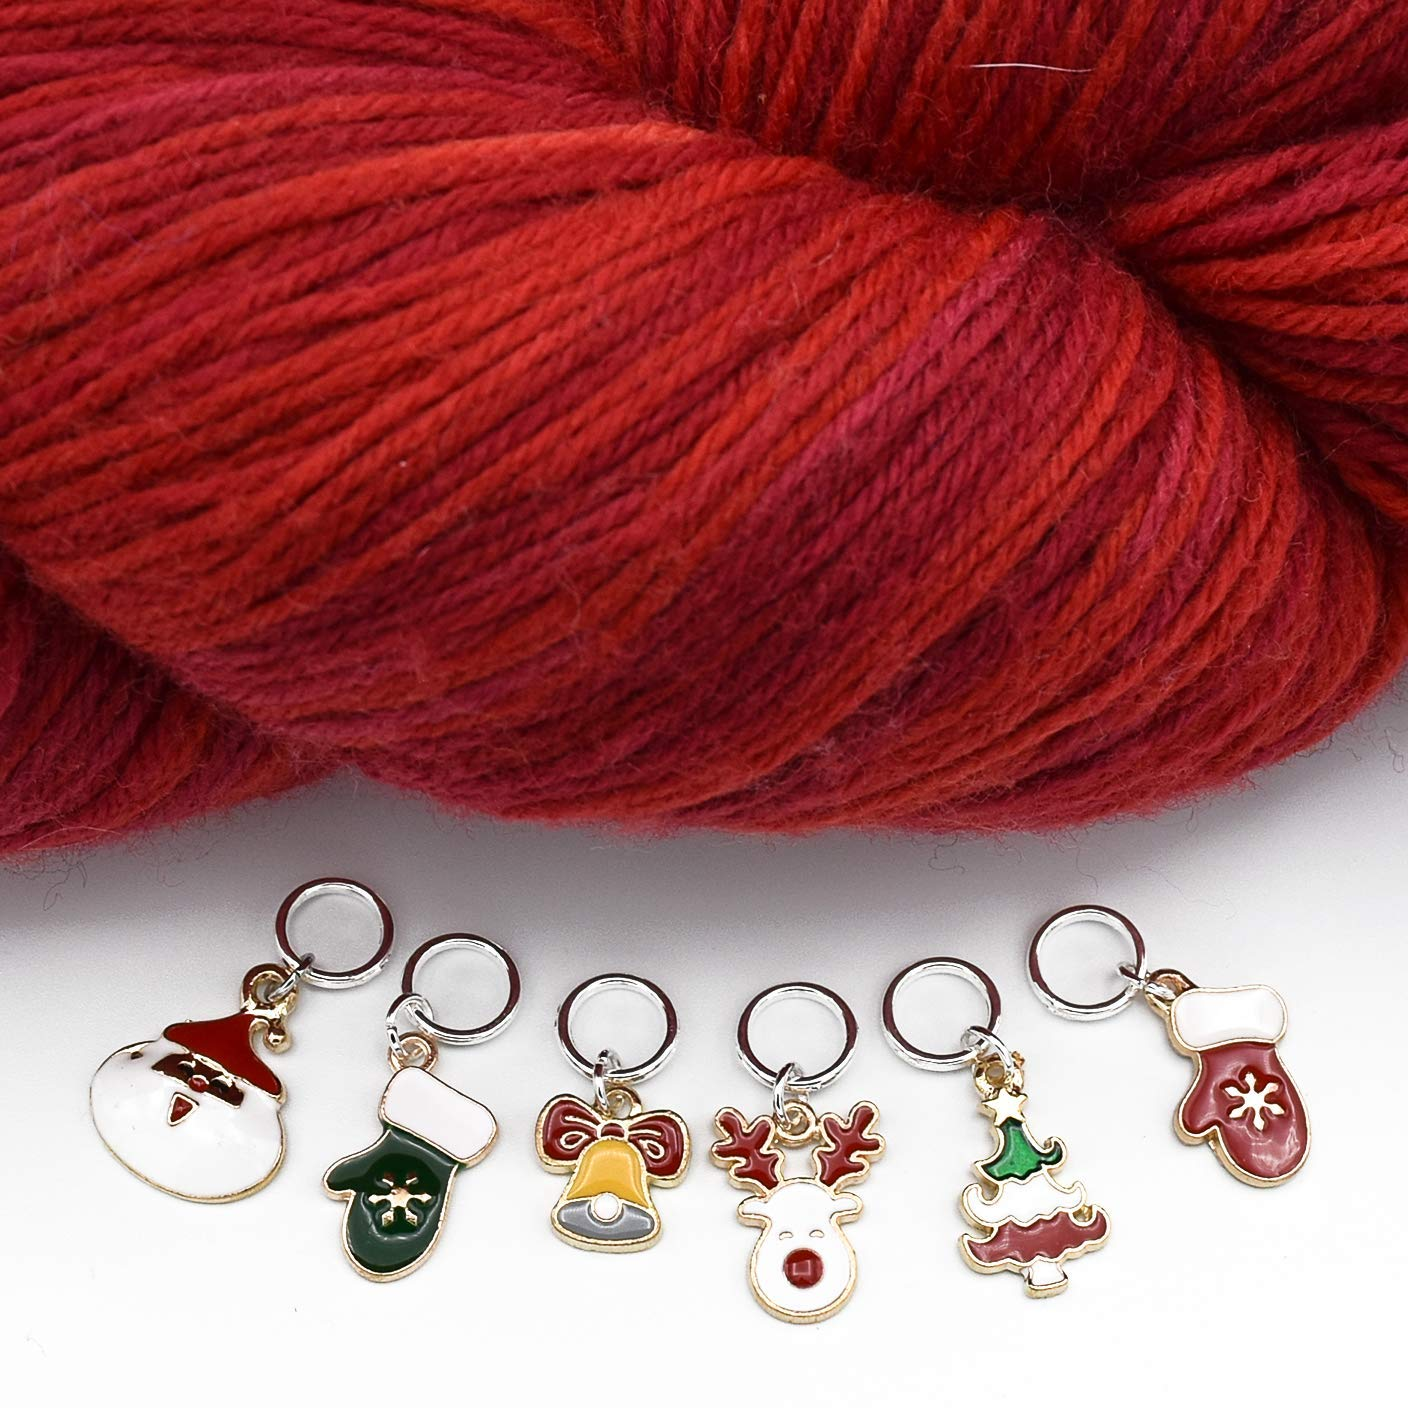 Christmas Stitch Markers up to US 8 Needles